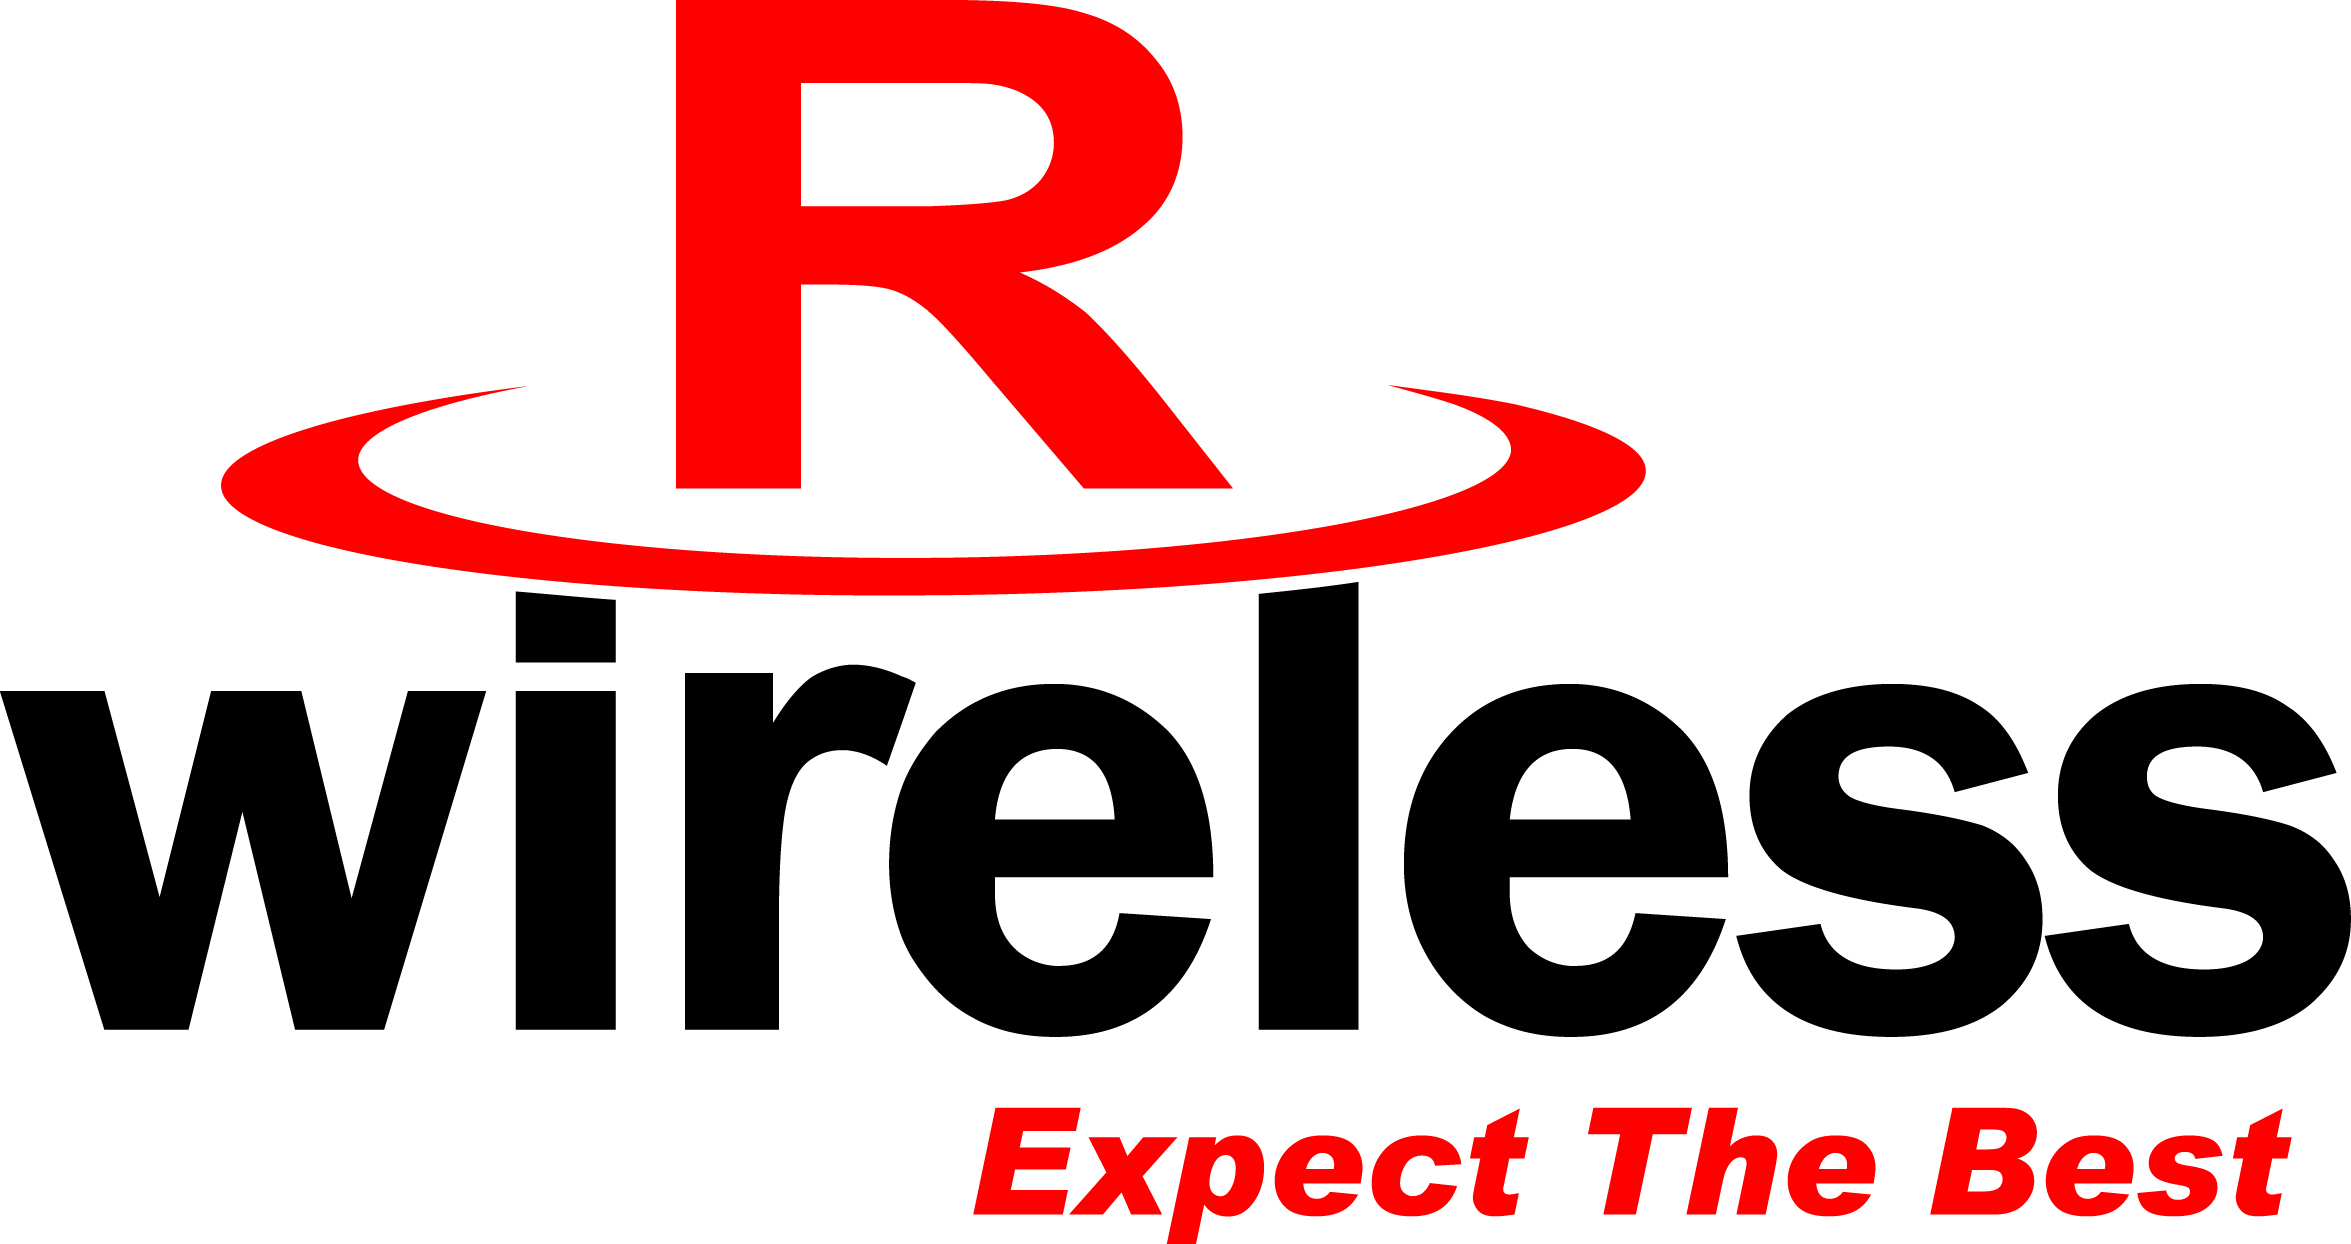 Here's why R Wireless Prioritizes Employee Safety